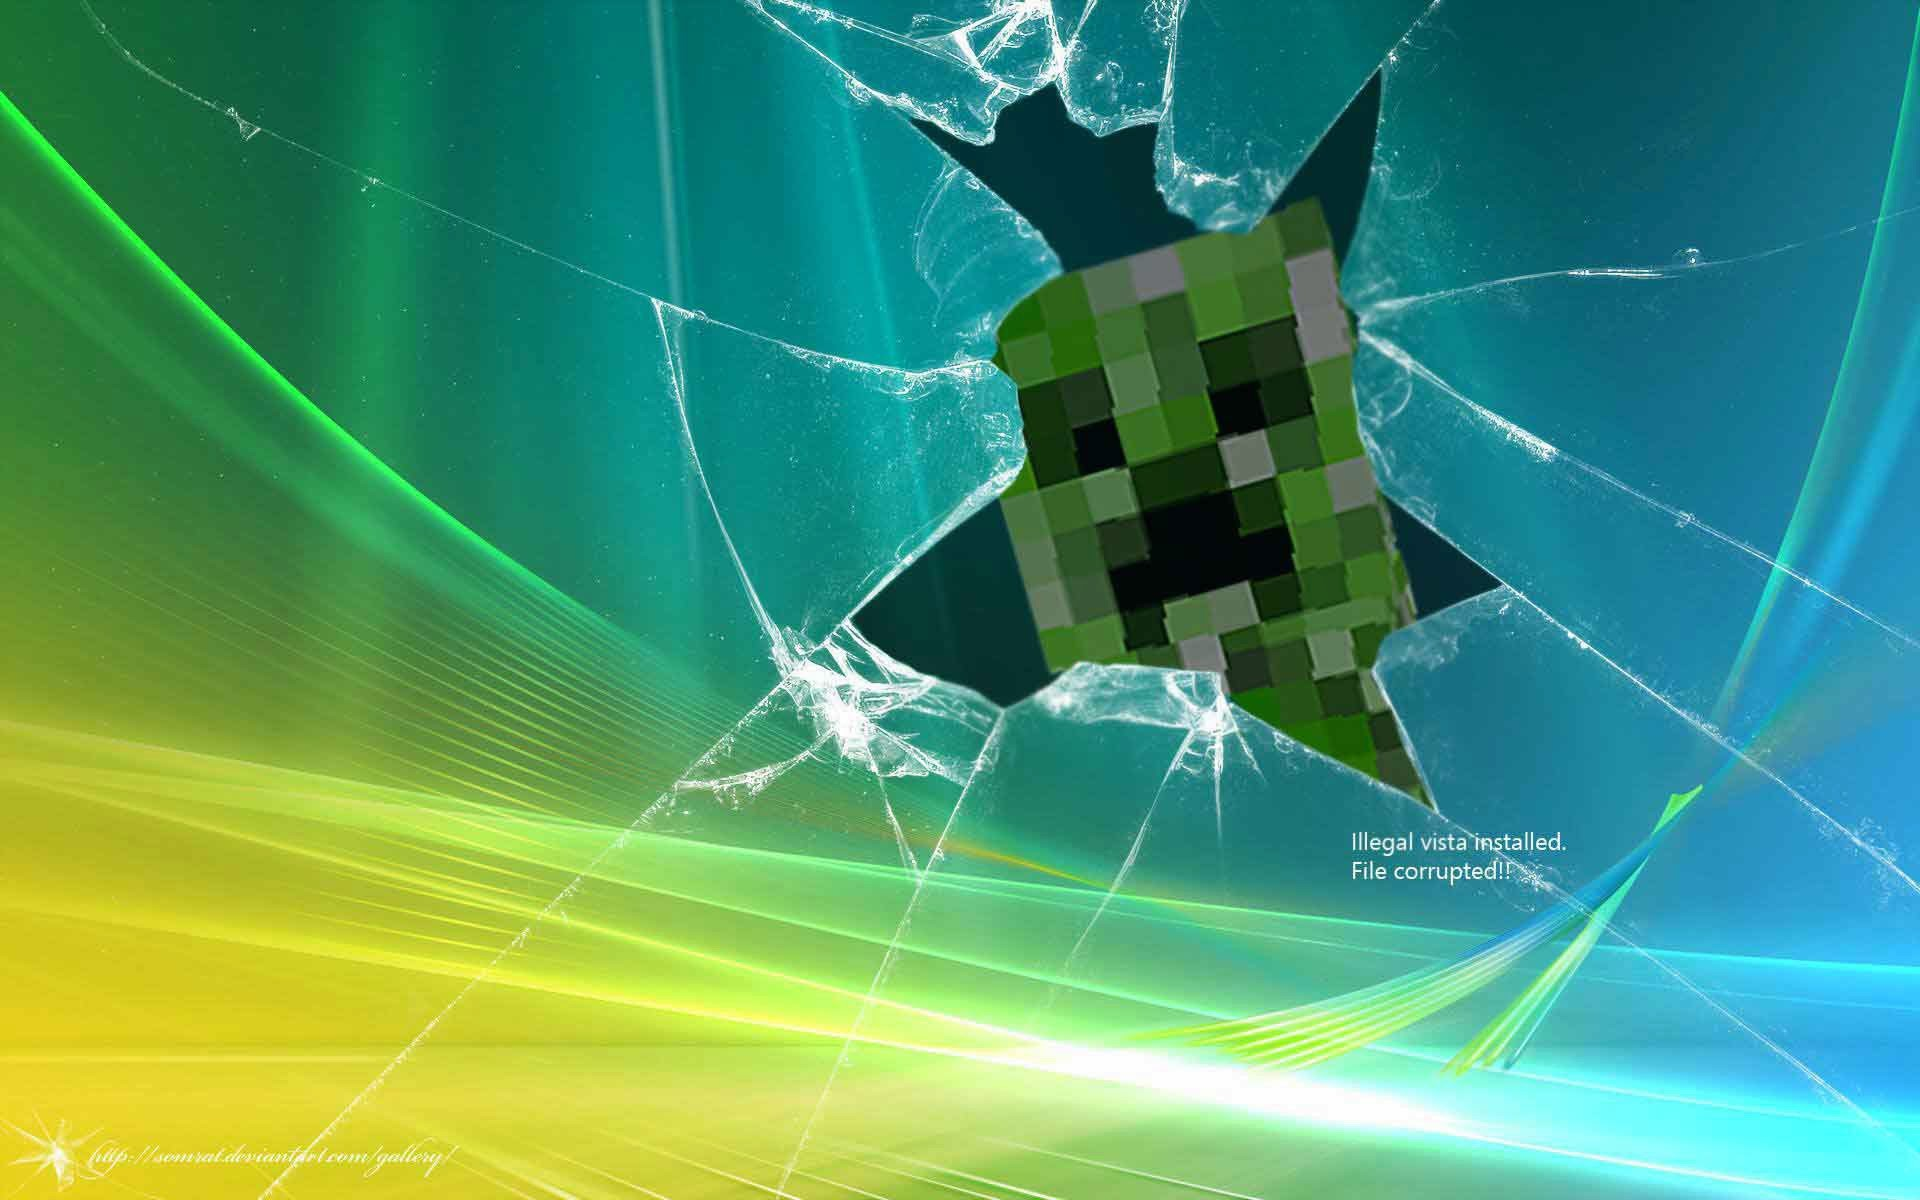 Wonderful Wallpaper Minecraft Windows 7 - 1064136-broken-windows-wallpaper-1920x1200-full-hd  Picture_65117.jpg